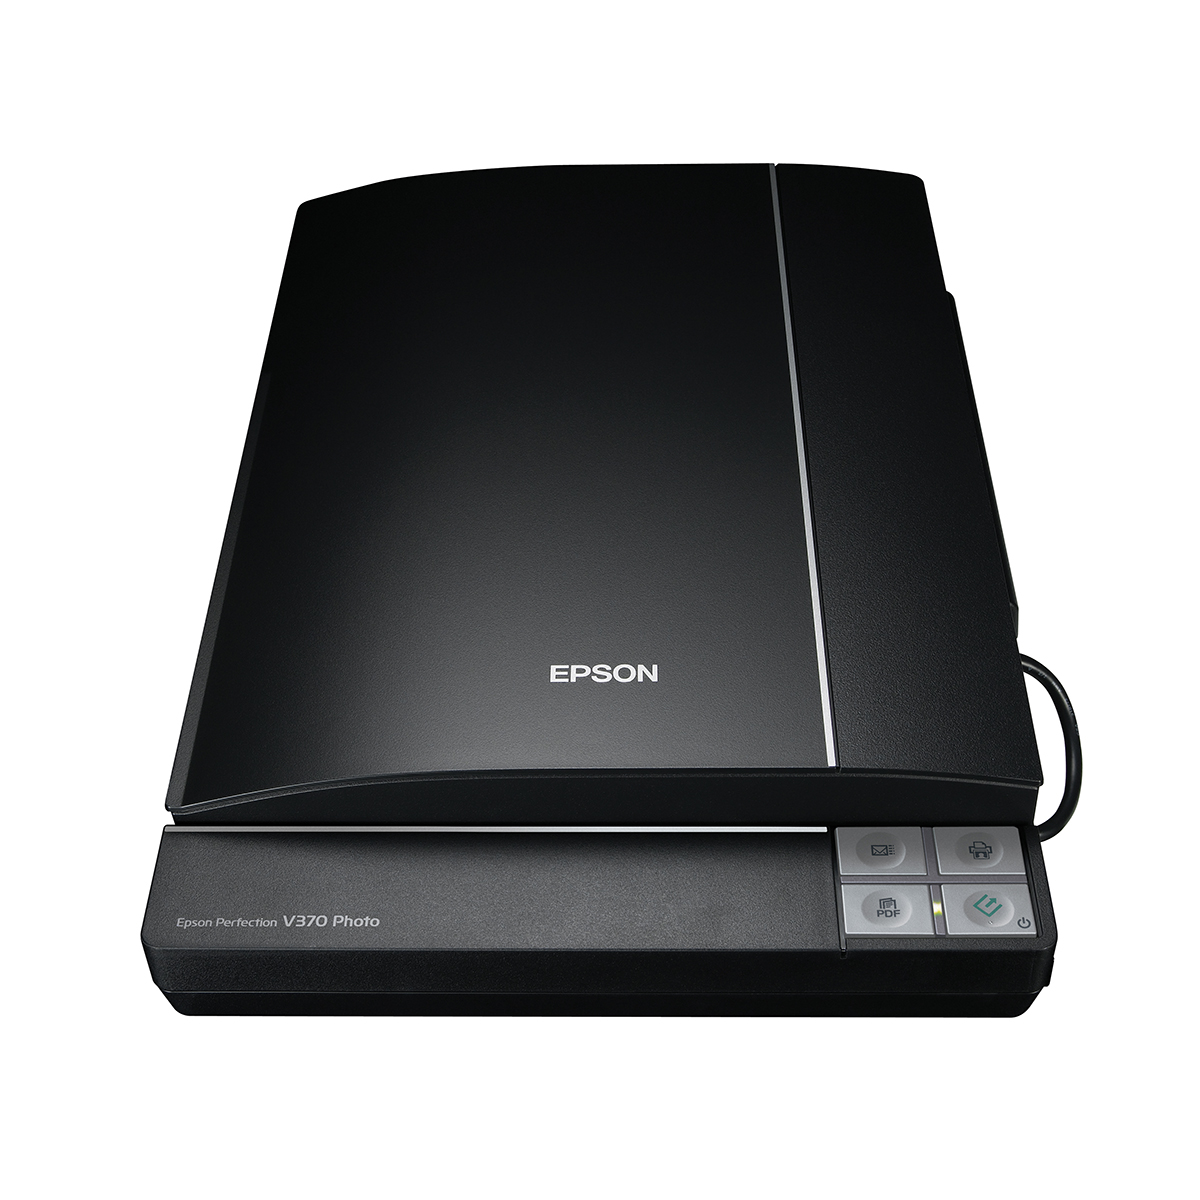 Epson Perfection V370 Photo and Film Scanner